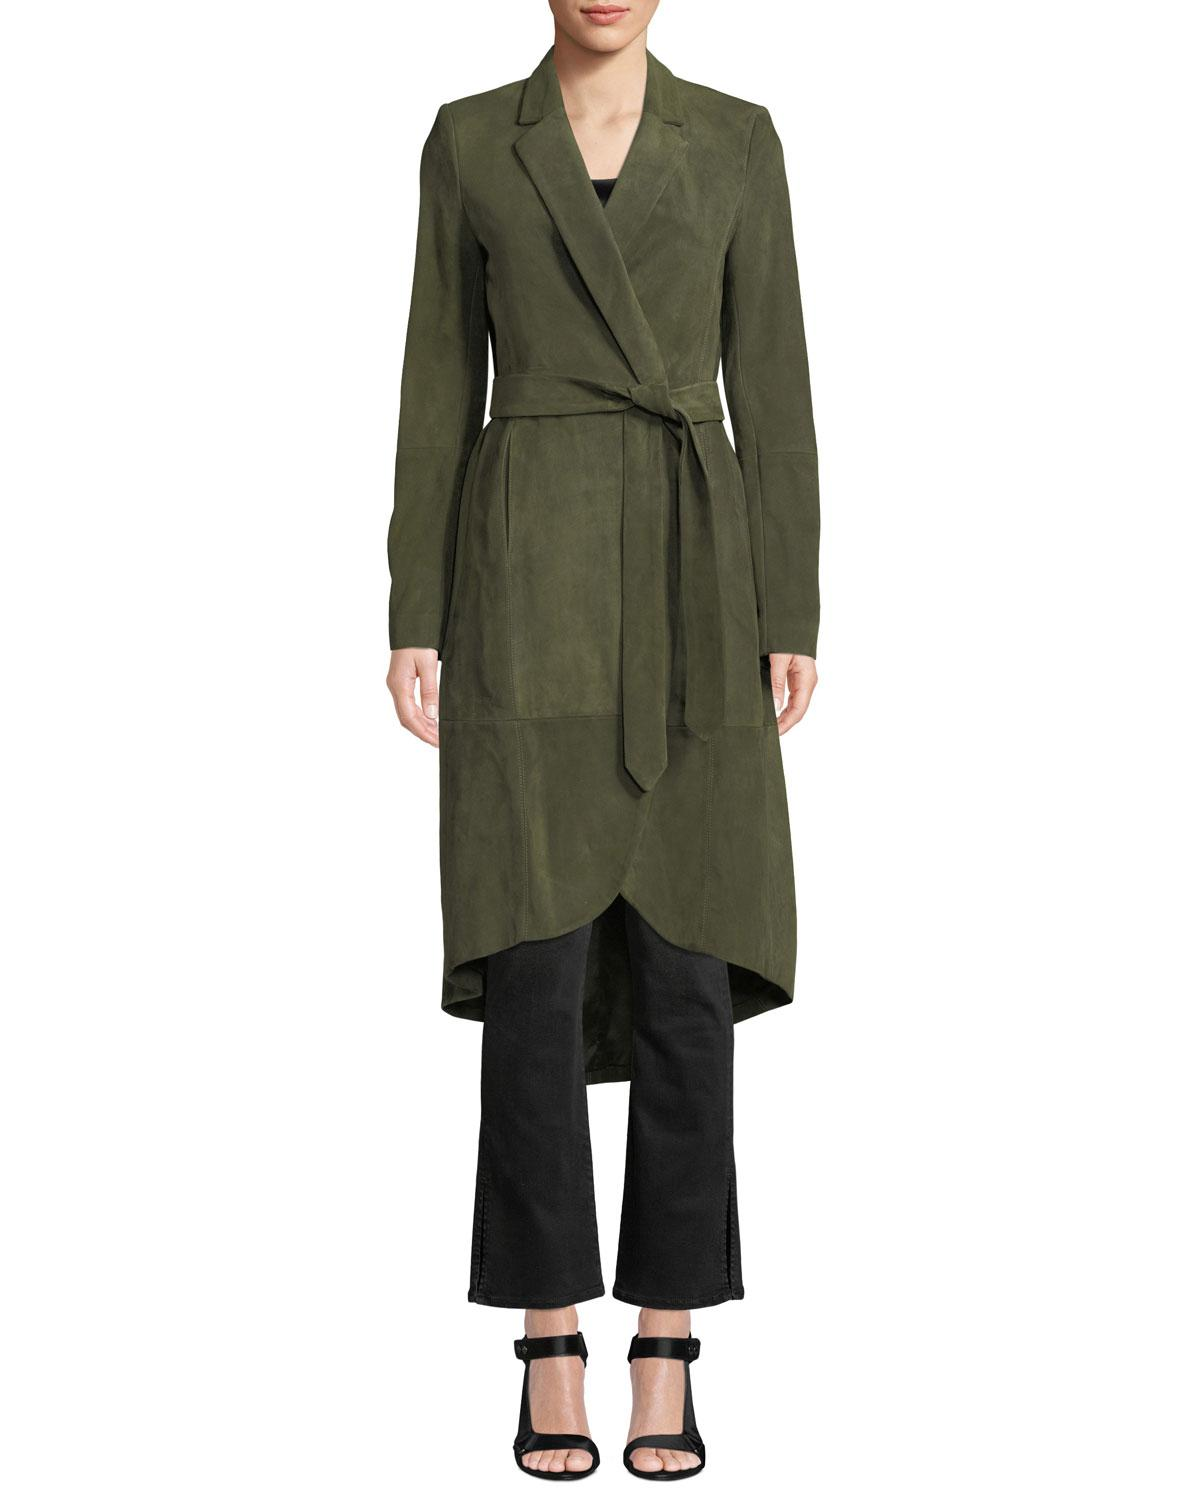 dcf486332df9 Lyst - Alice + Olivia Karley Notched-collar Suede Wrap Coat in Green